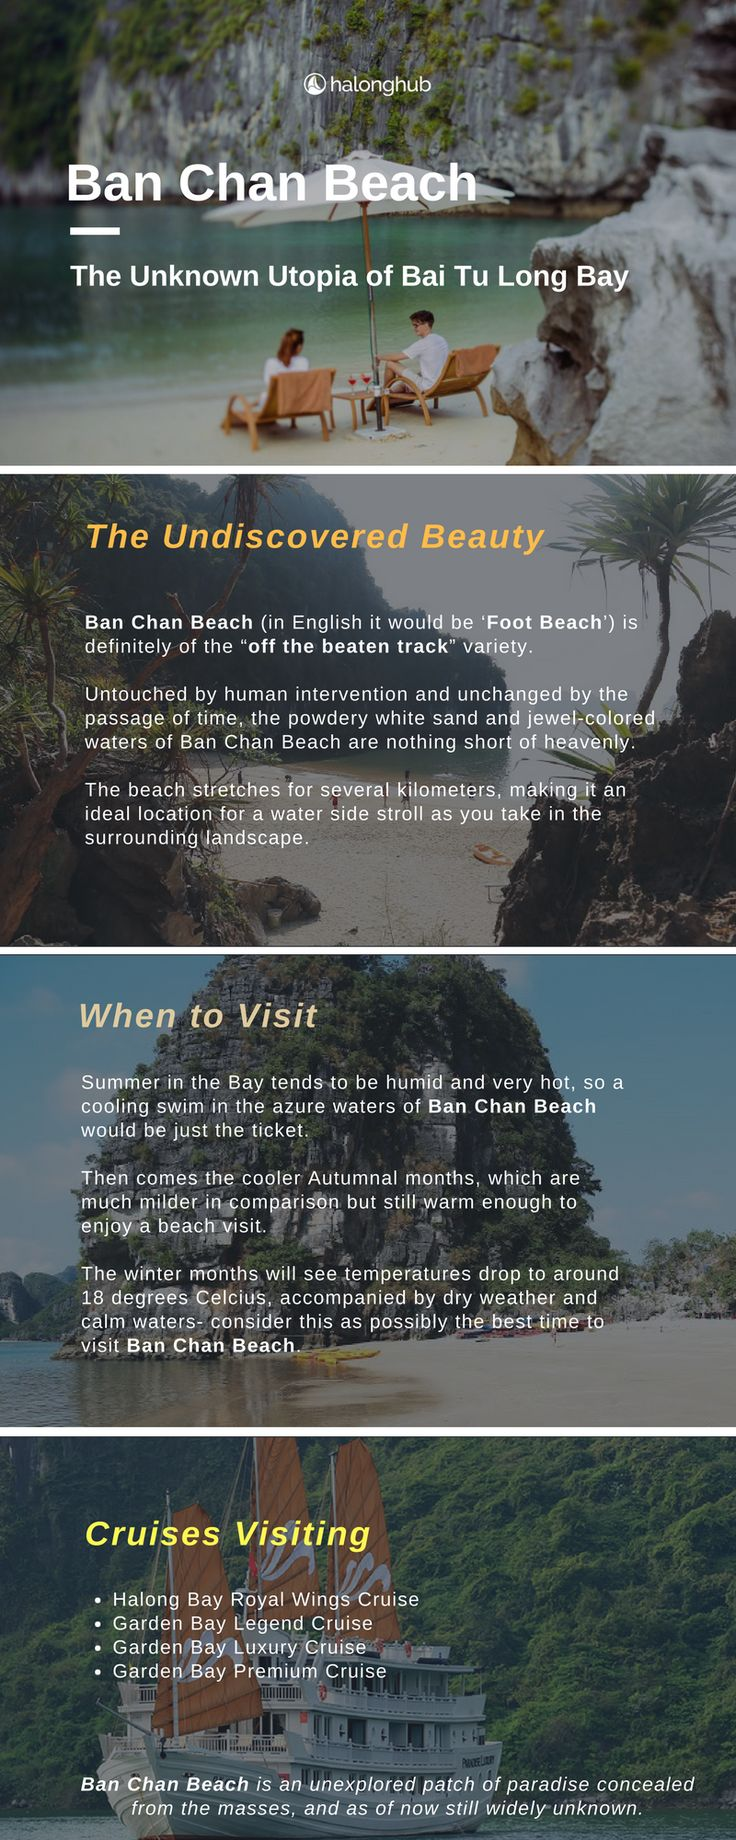 Hidden away Halong Bay, Ban Chan Beach is an unexplored patch of paradise concealed from the masses, and as of now still widely unknown.